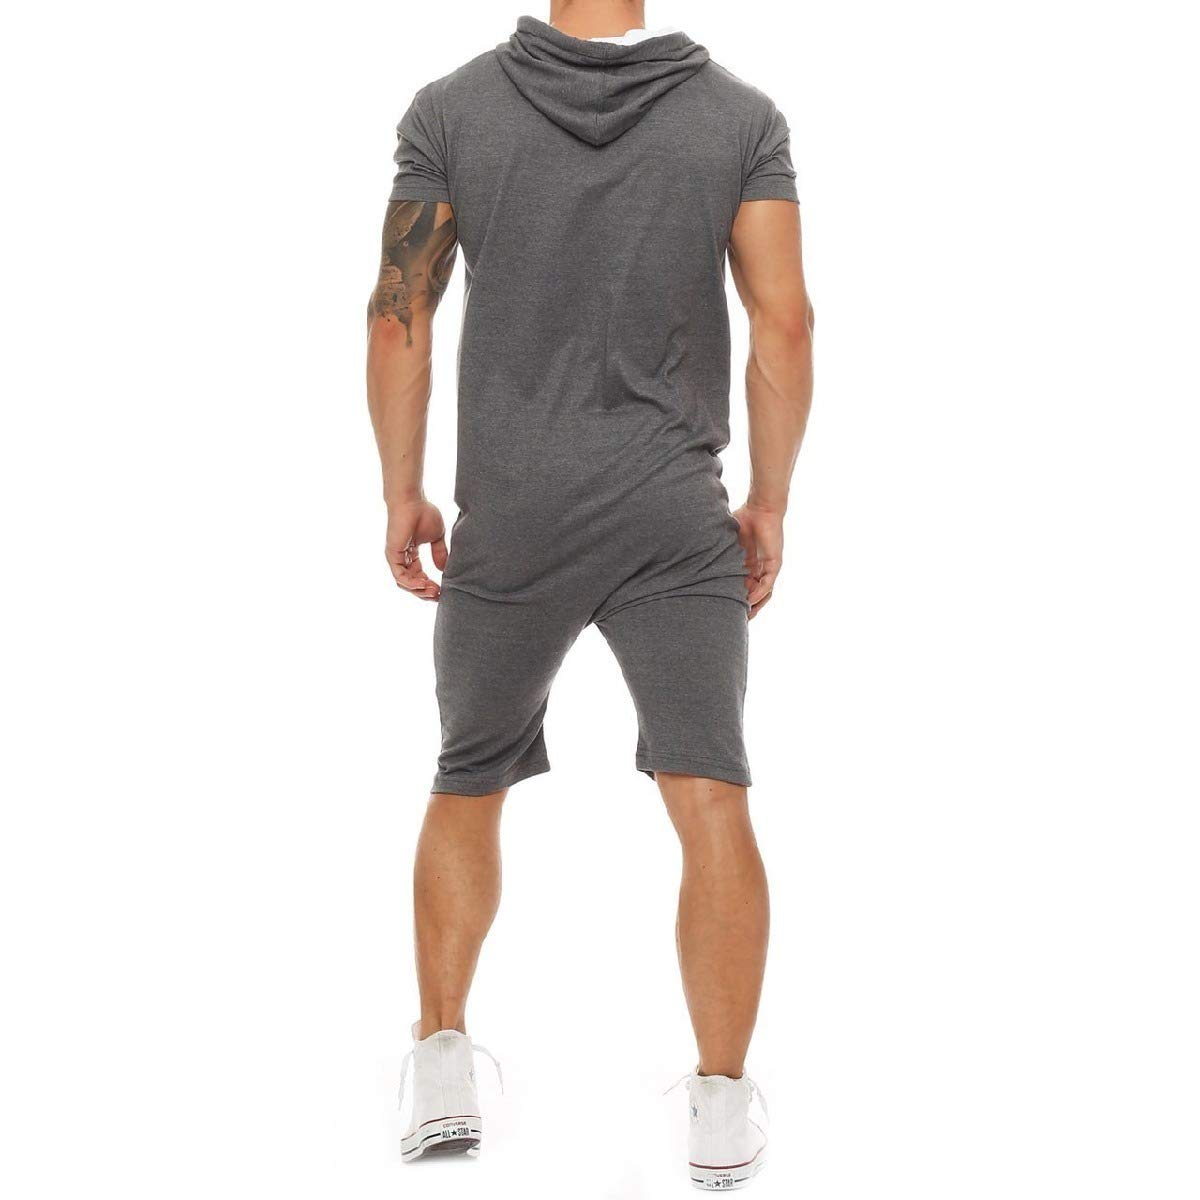 HEFASDM Mens Athletic Jumpsuit Hood Comfy Overall Zipper Half Pants Shorts